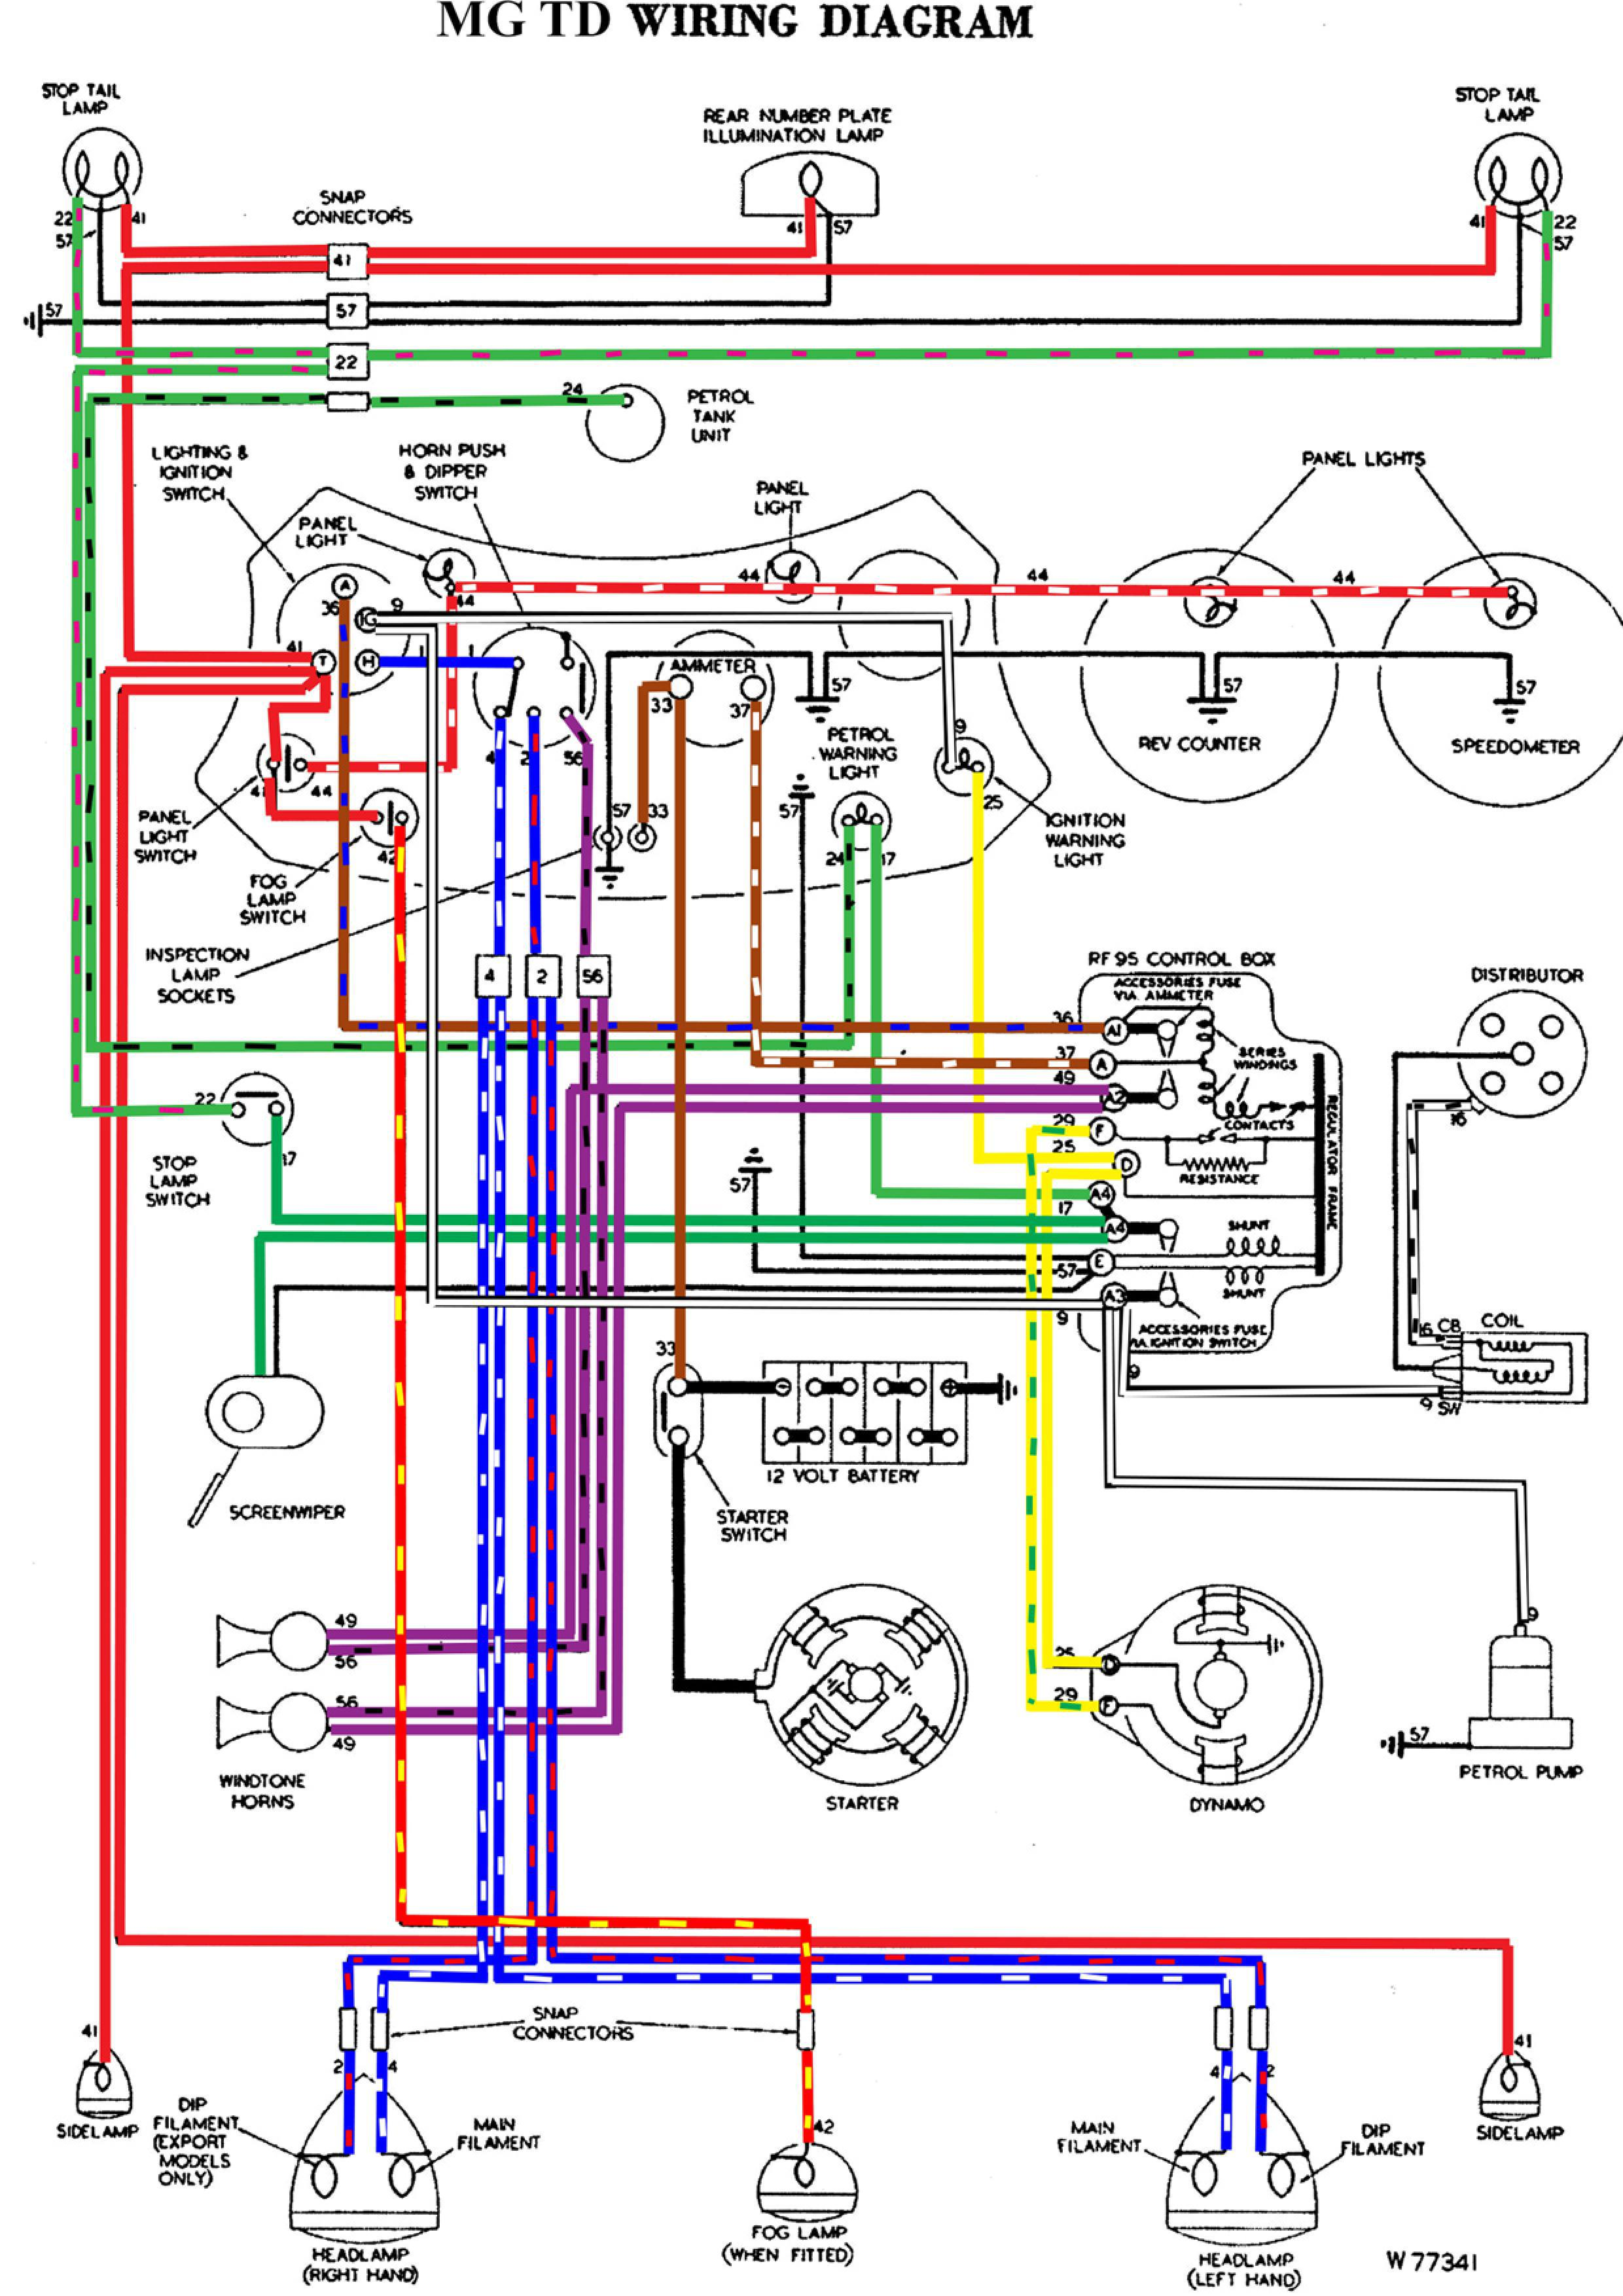 Diagram 1957 Mg Wiring Diagram Full Version Hd Quality Wiring Diagram Diagramstana Dolcialchimie It